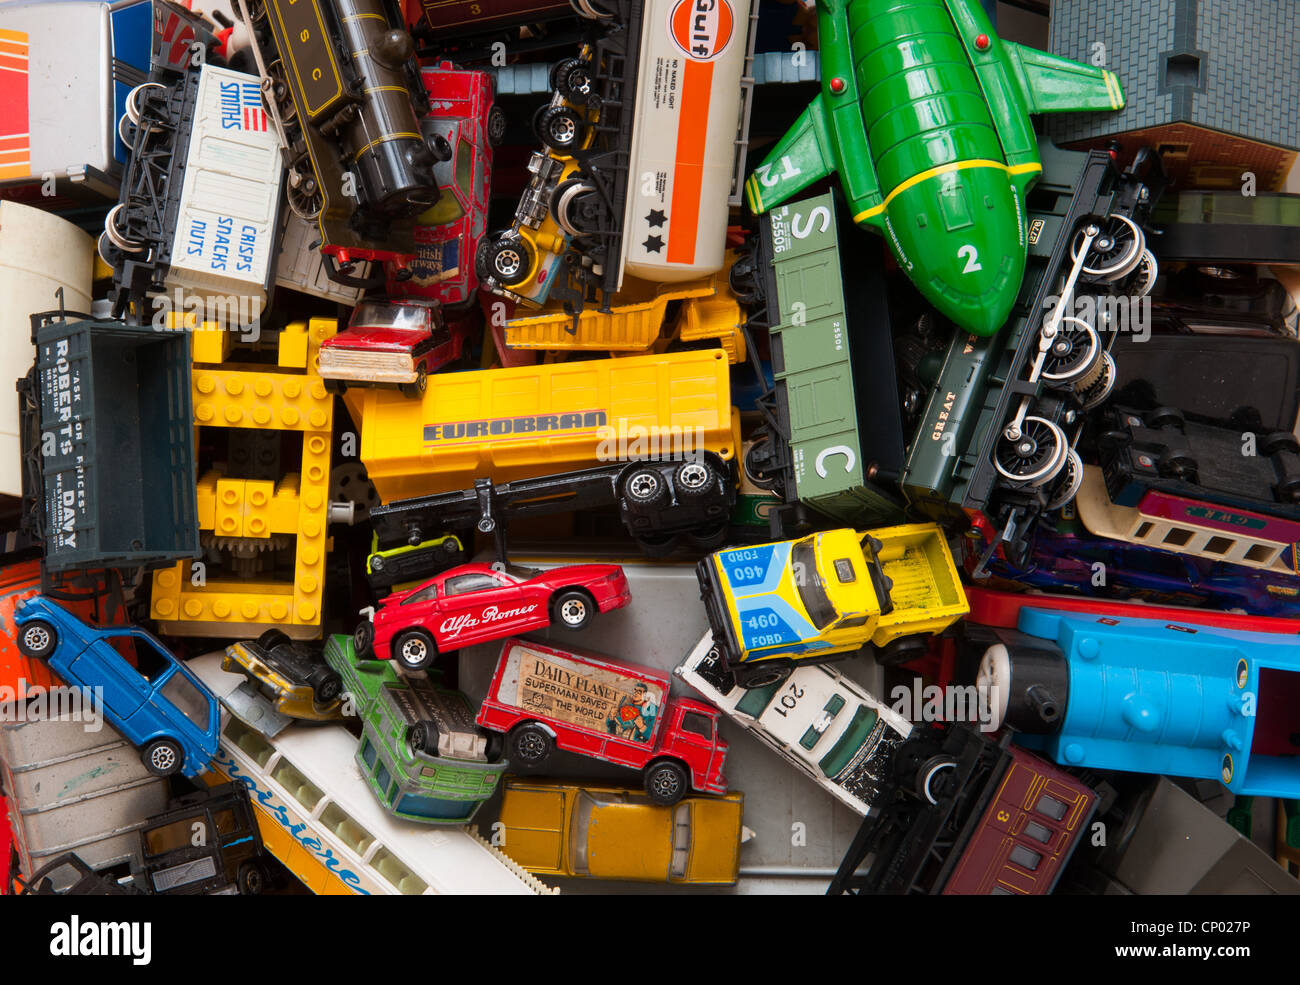 A Collection Of Old Toys - Stock Image